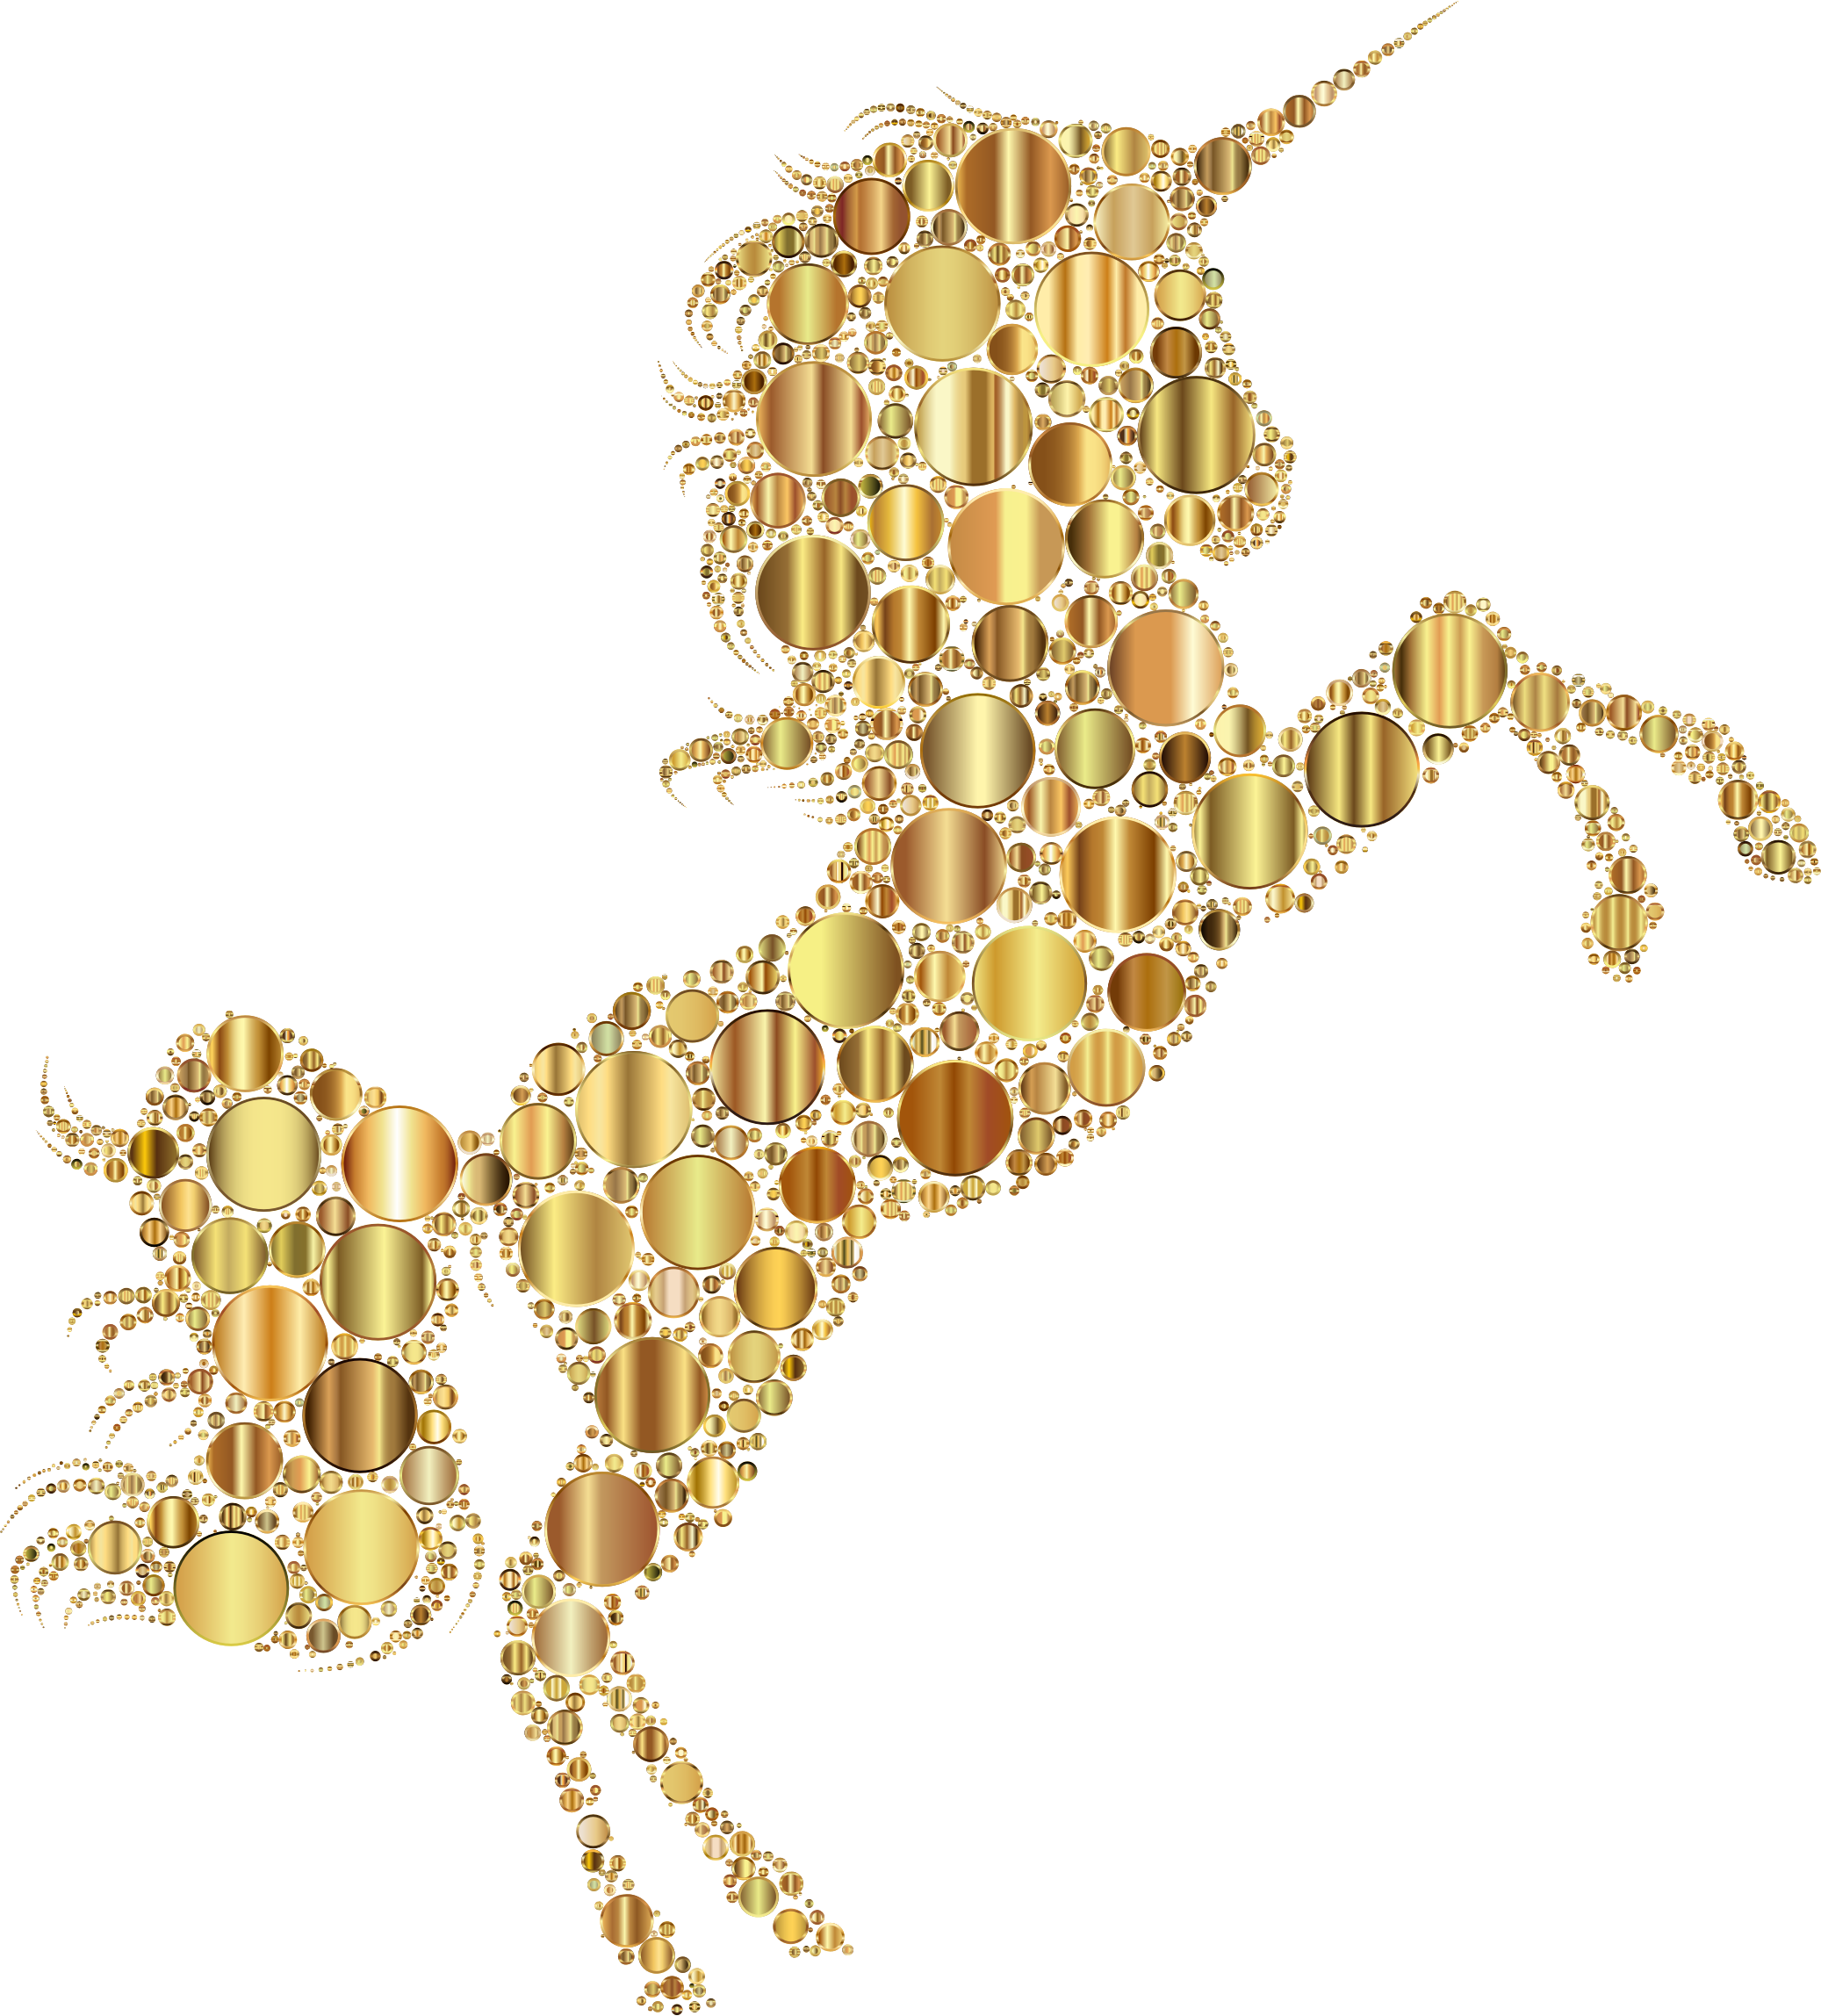 Gold Unicorn Silhouette 2 Circles 2 No Background by GDJ